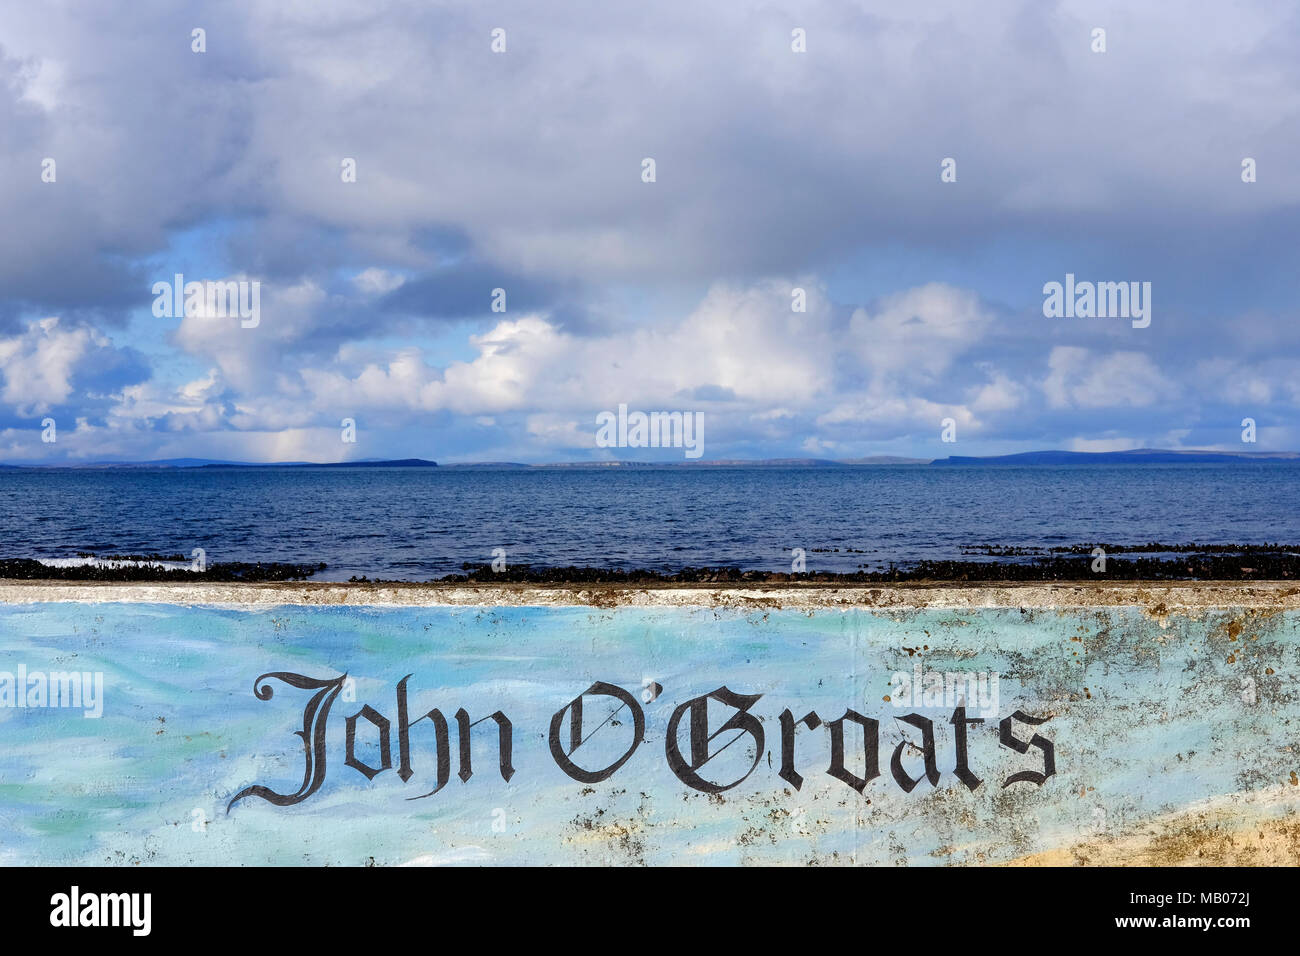 CAITHNESS, UK: John o' Groats which lies on Britain's North Eastern tip and is popular with tourists as one end of the longest journey on the mainland - Stock Image